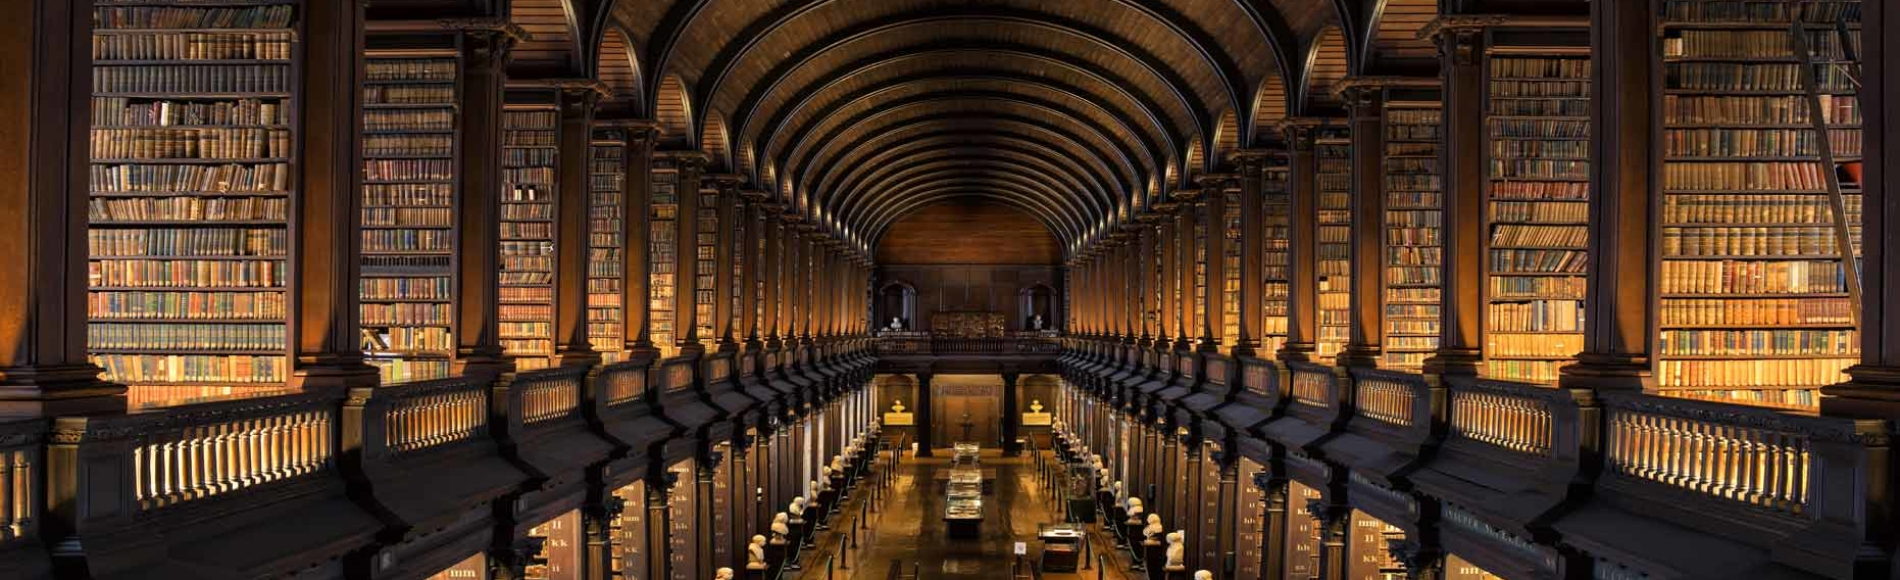 trinity-college-old-library-banner-1900x580_c